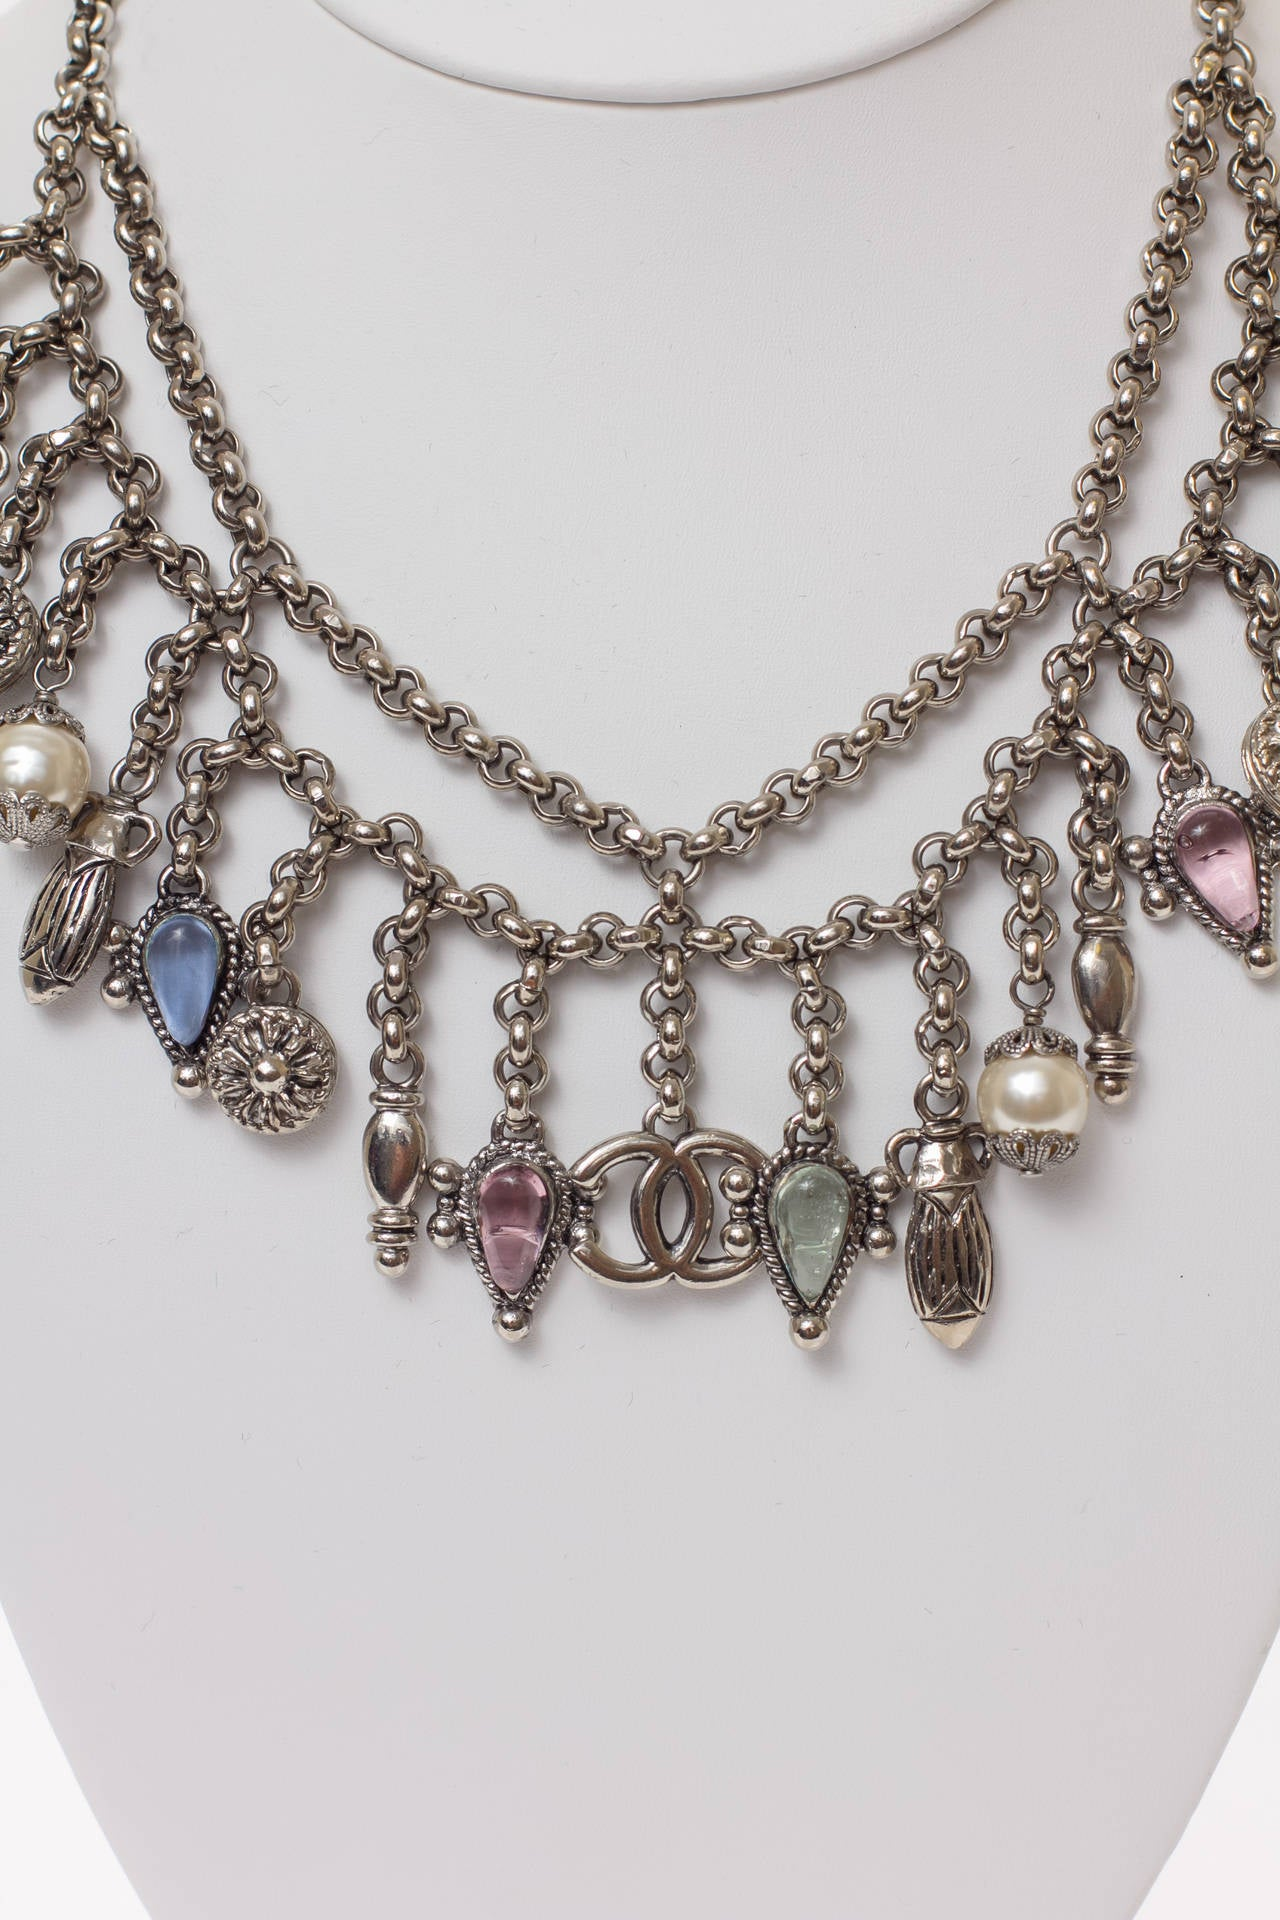 Vintage Chanel Silver Necklace with Dangle MultiColor Charms Choker In Excellent Condition For Sale In Carmel by the Sea, CA